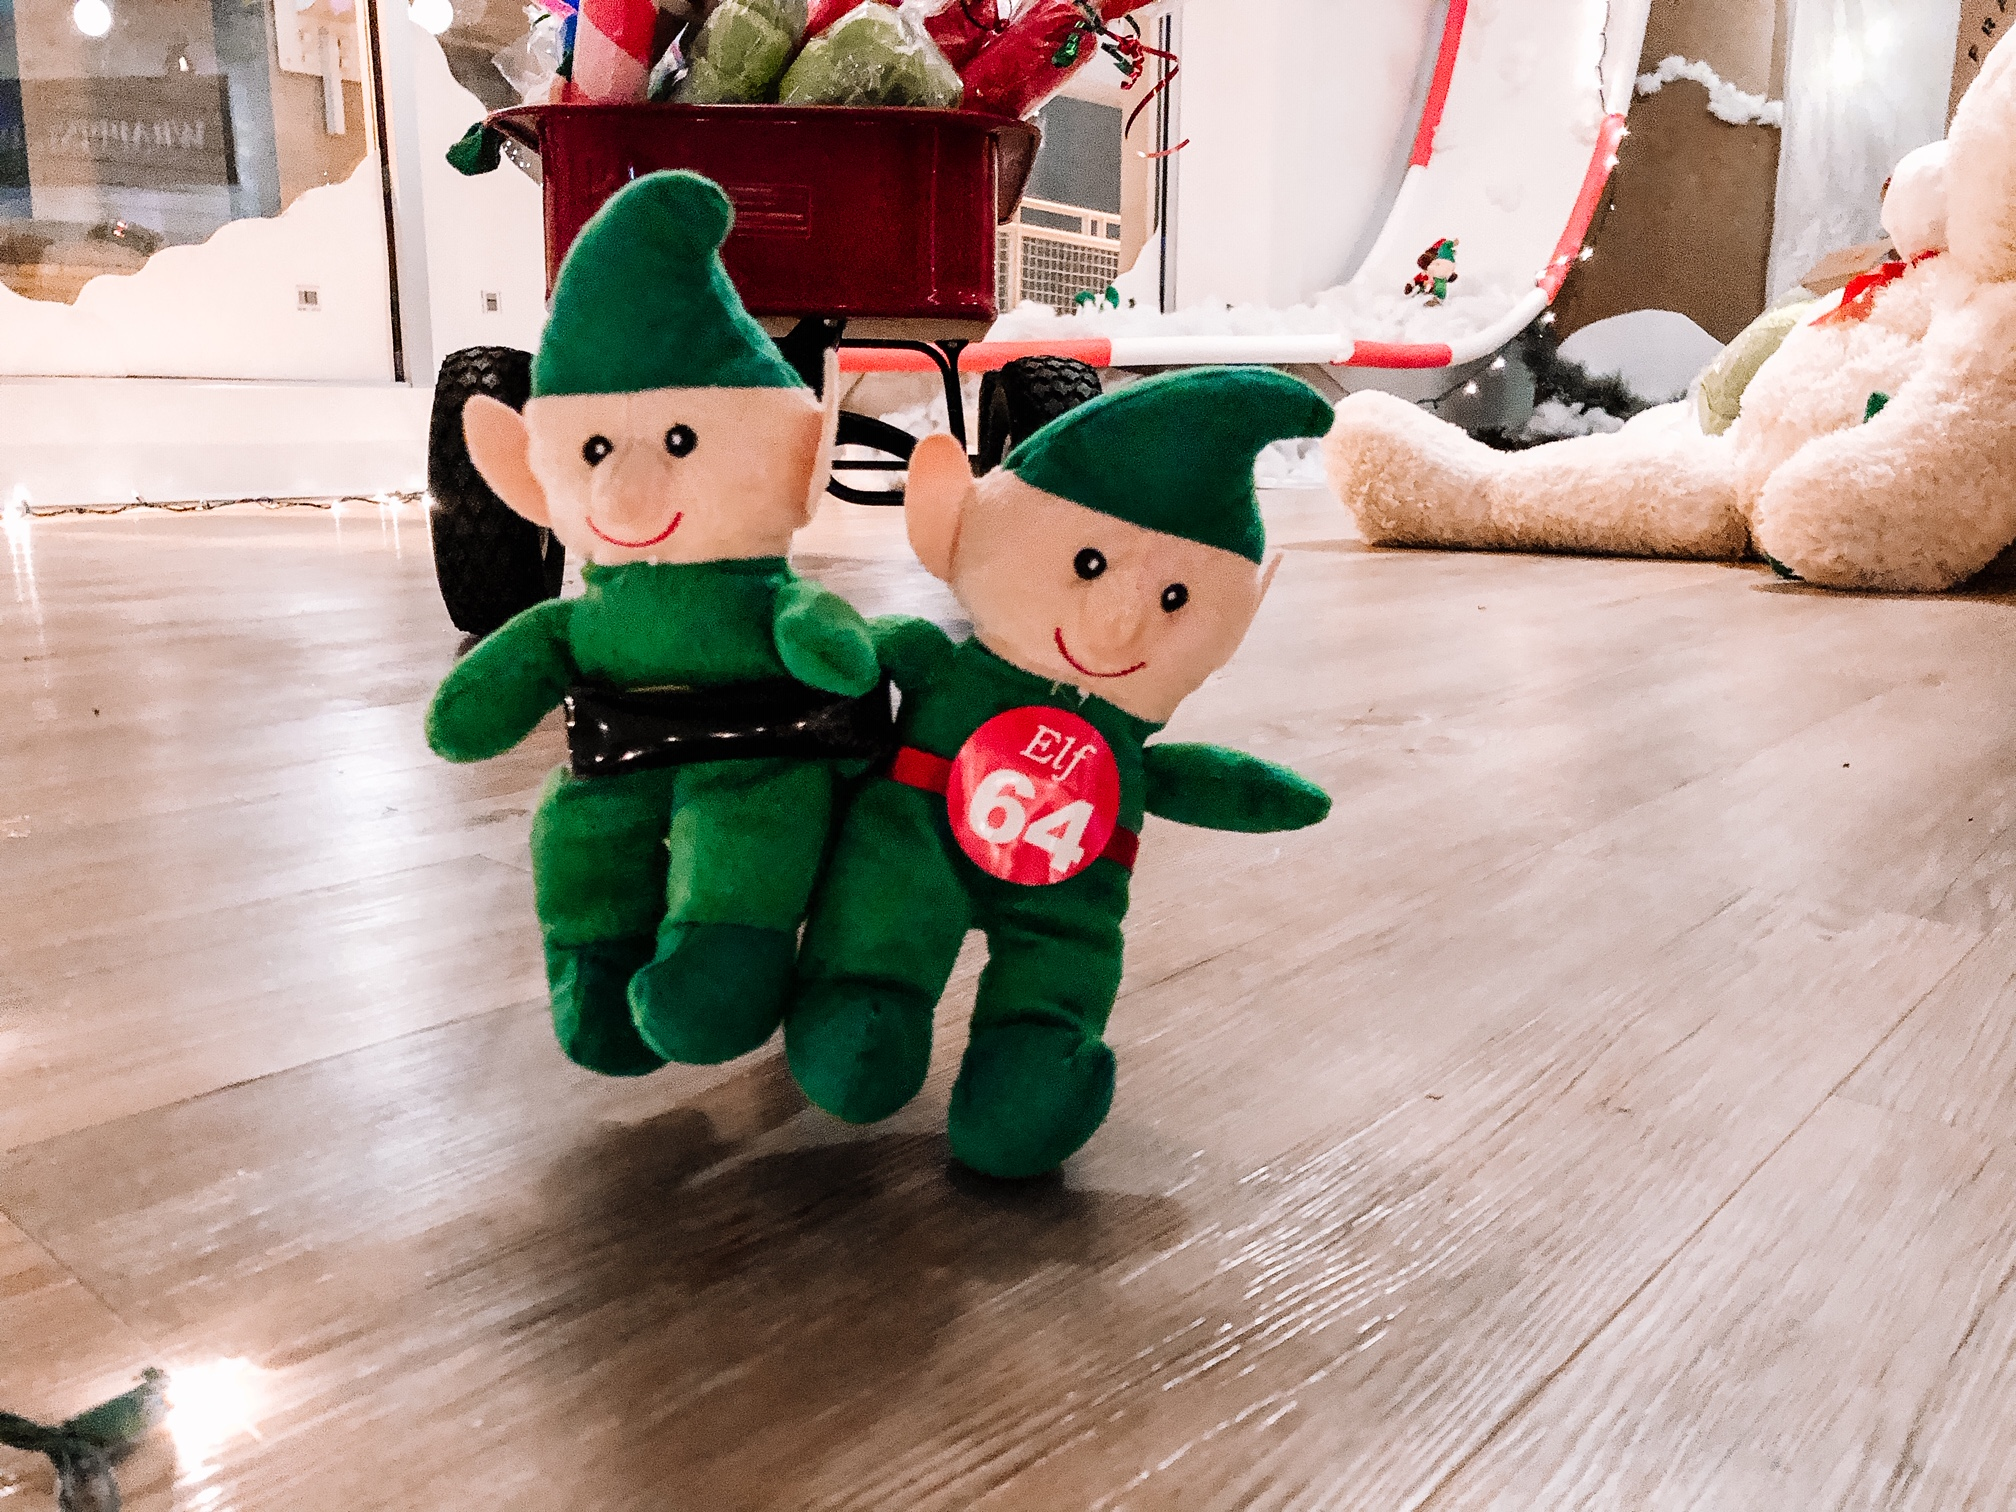 Kids are asked to snap a photo of the elves to help save them this holiday season.